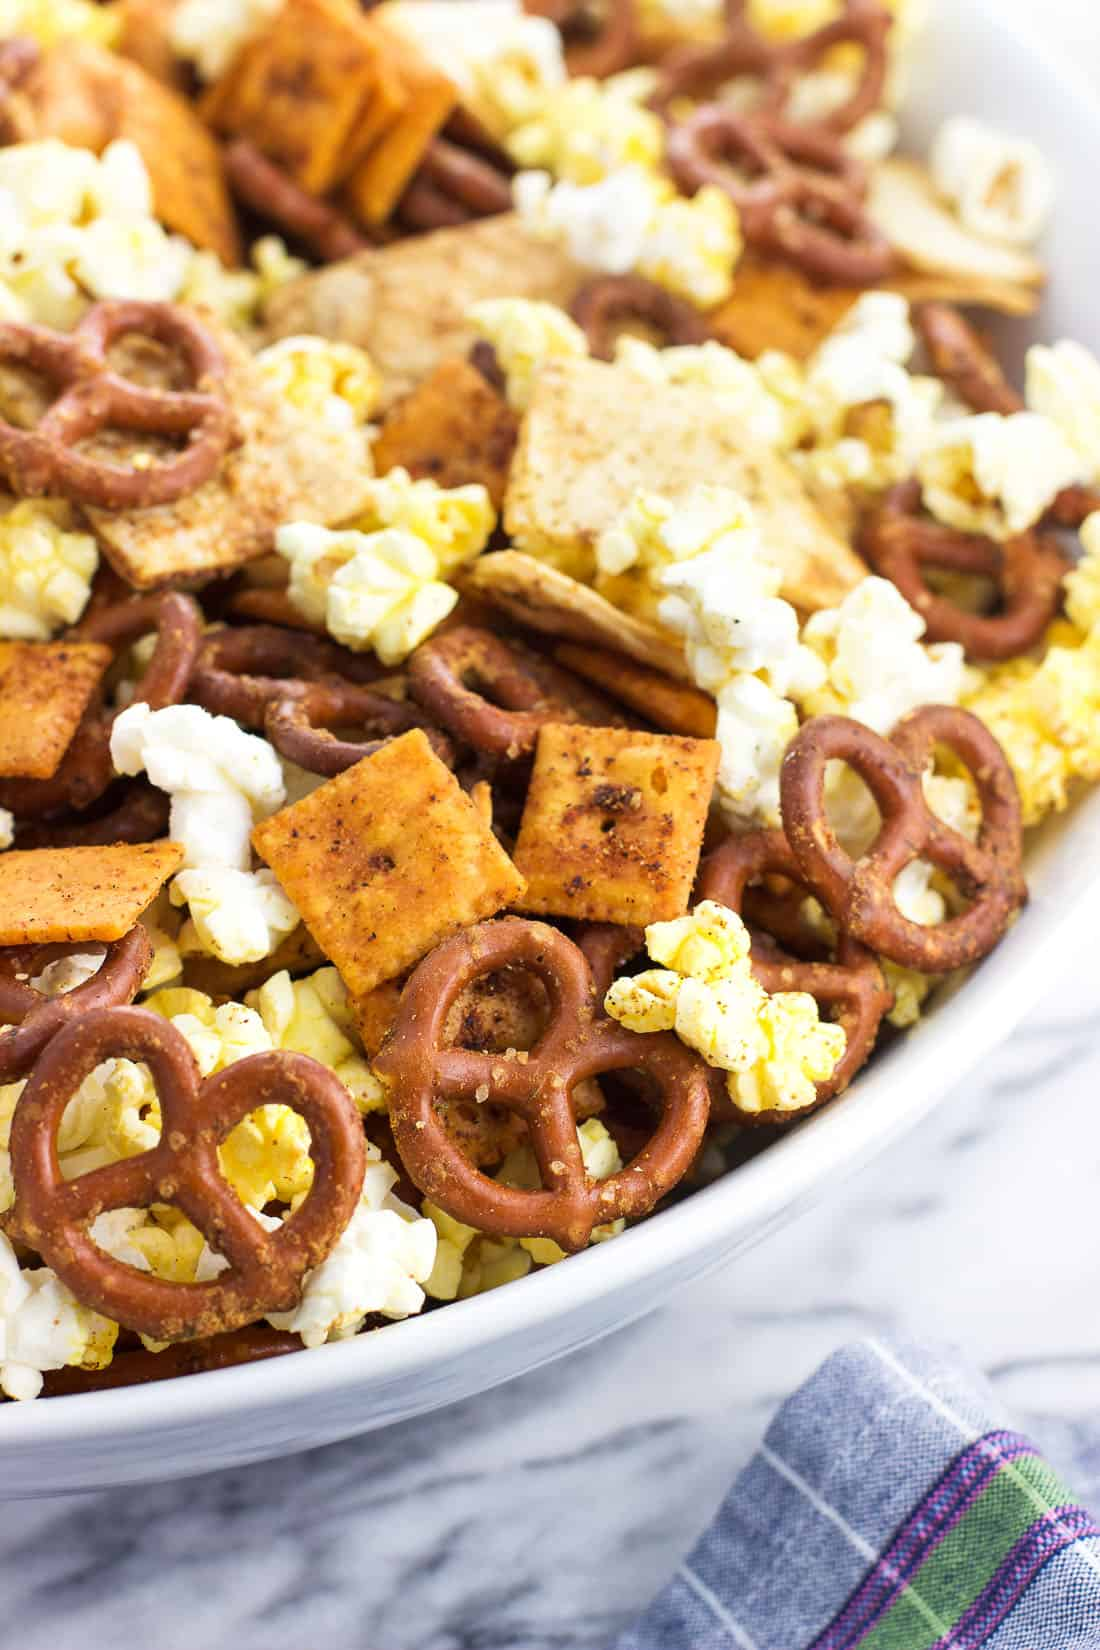 Assembled popcorn snack mix in a large serving bowl